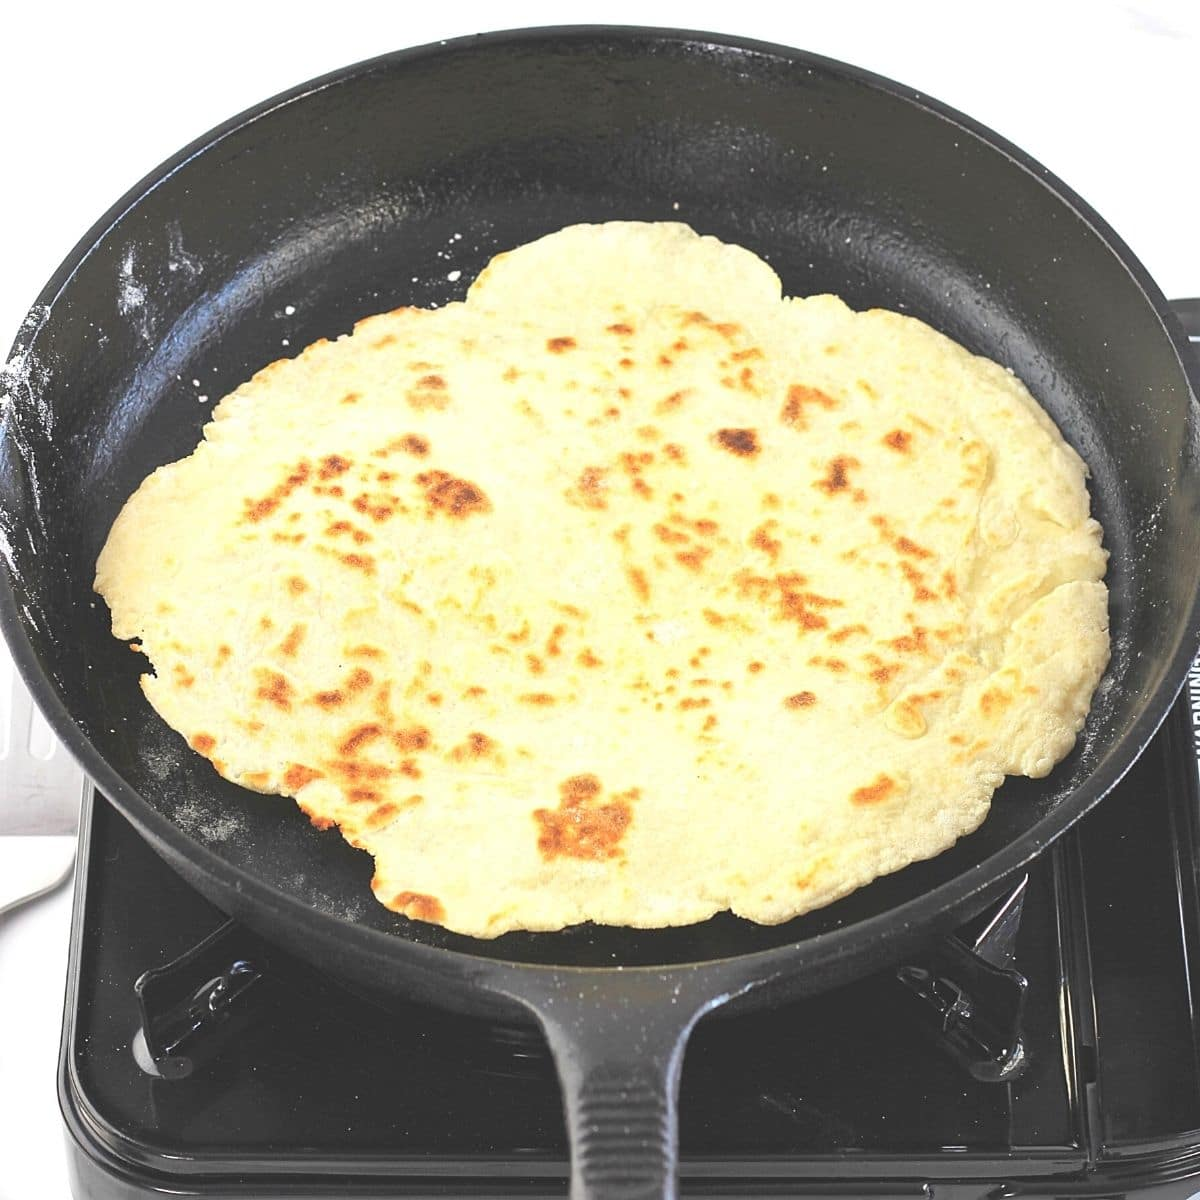 cooked flatbread in a cast iron skillet